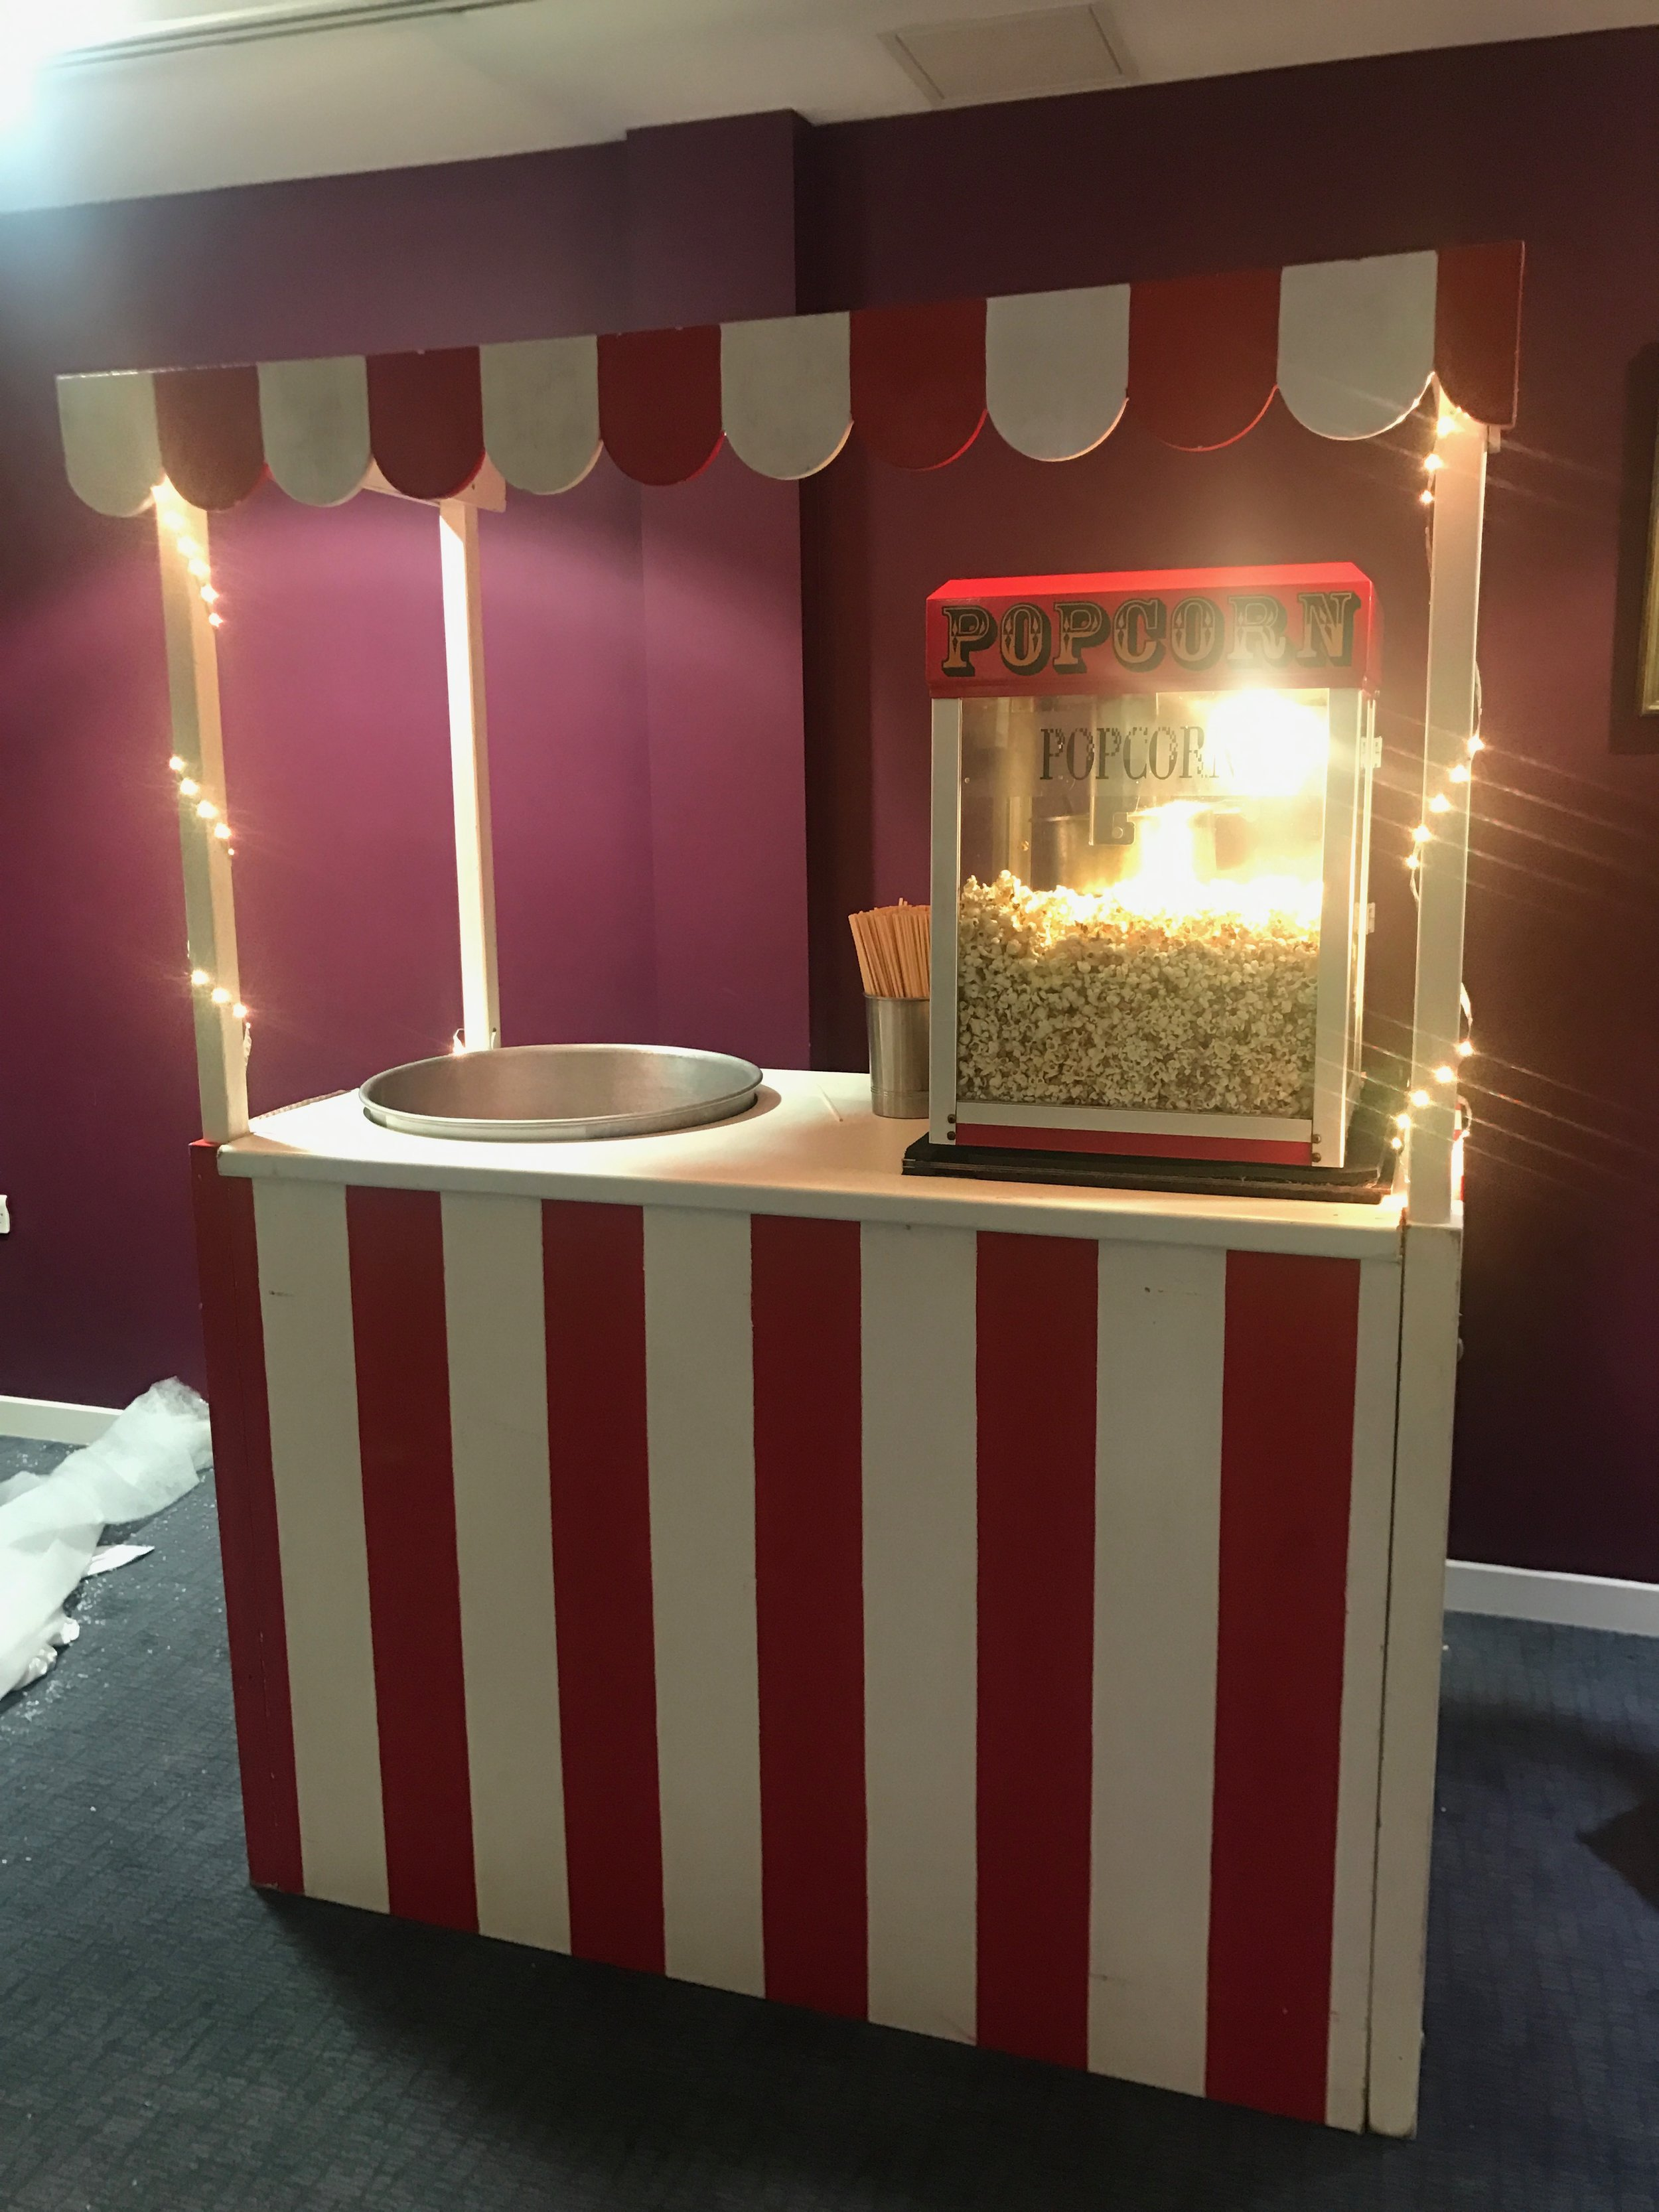 Candyfloss & Popcorn on our double serving station